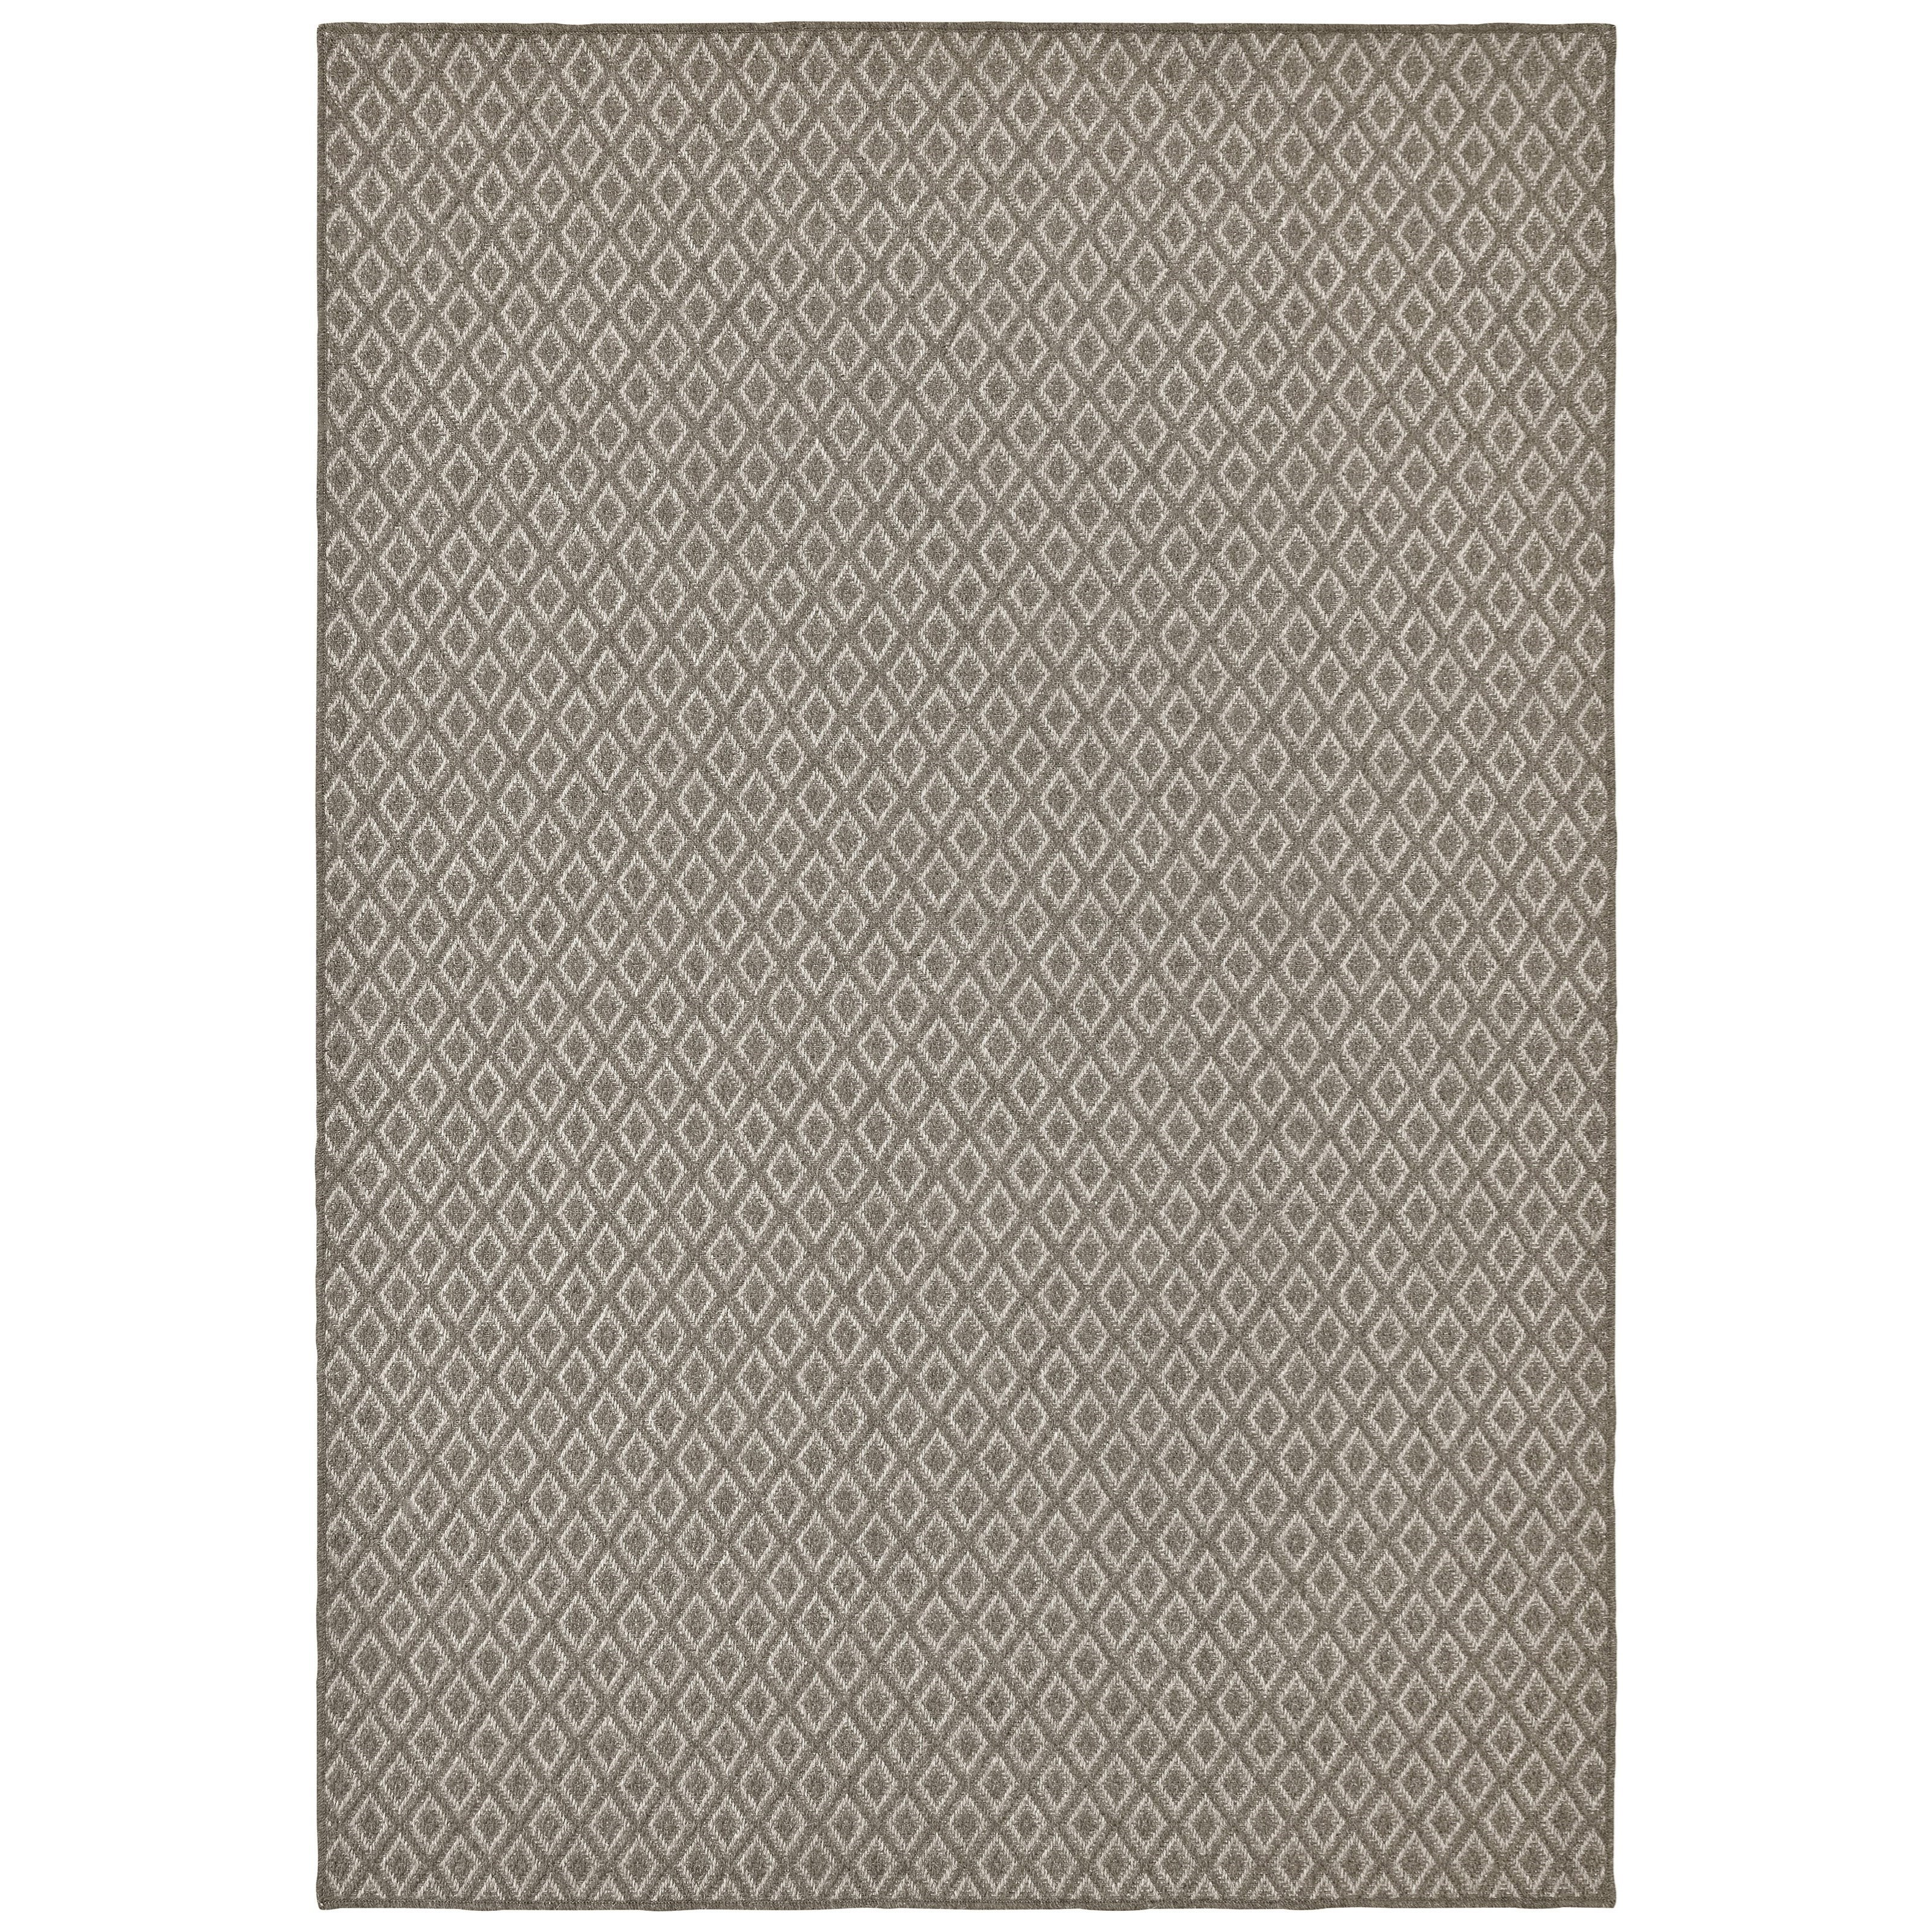 """Boucle 7'10"""" X 10'10"""" Rectangle Rug by Oriental Weavers at Darvin Furniture"""